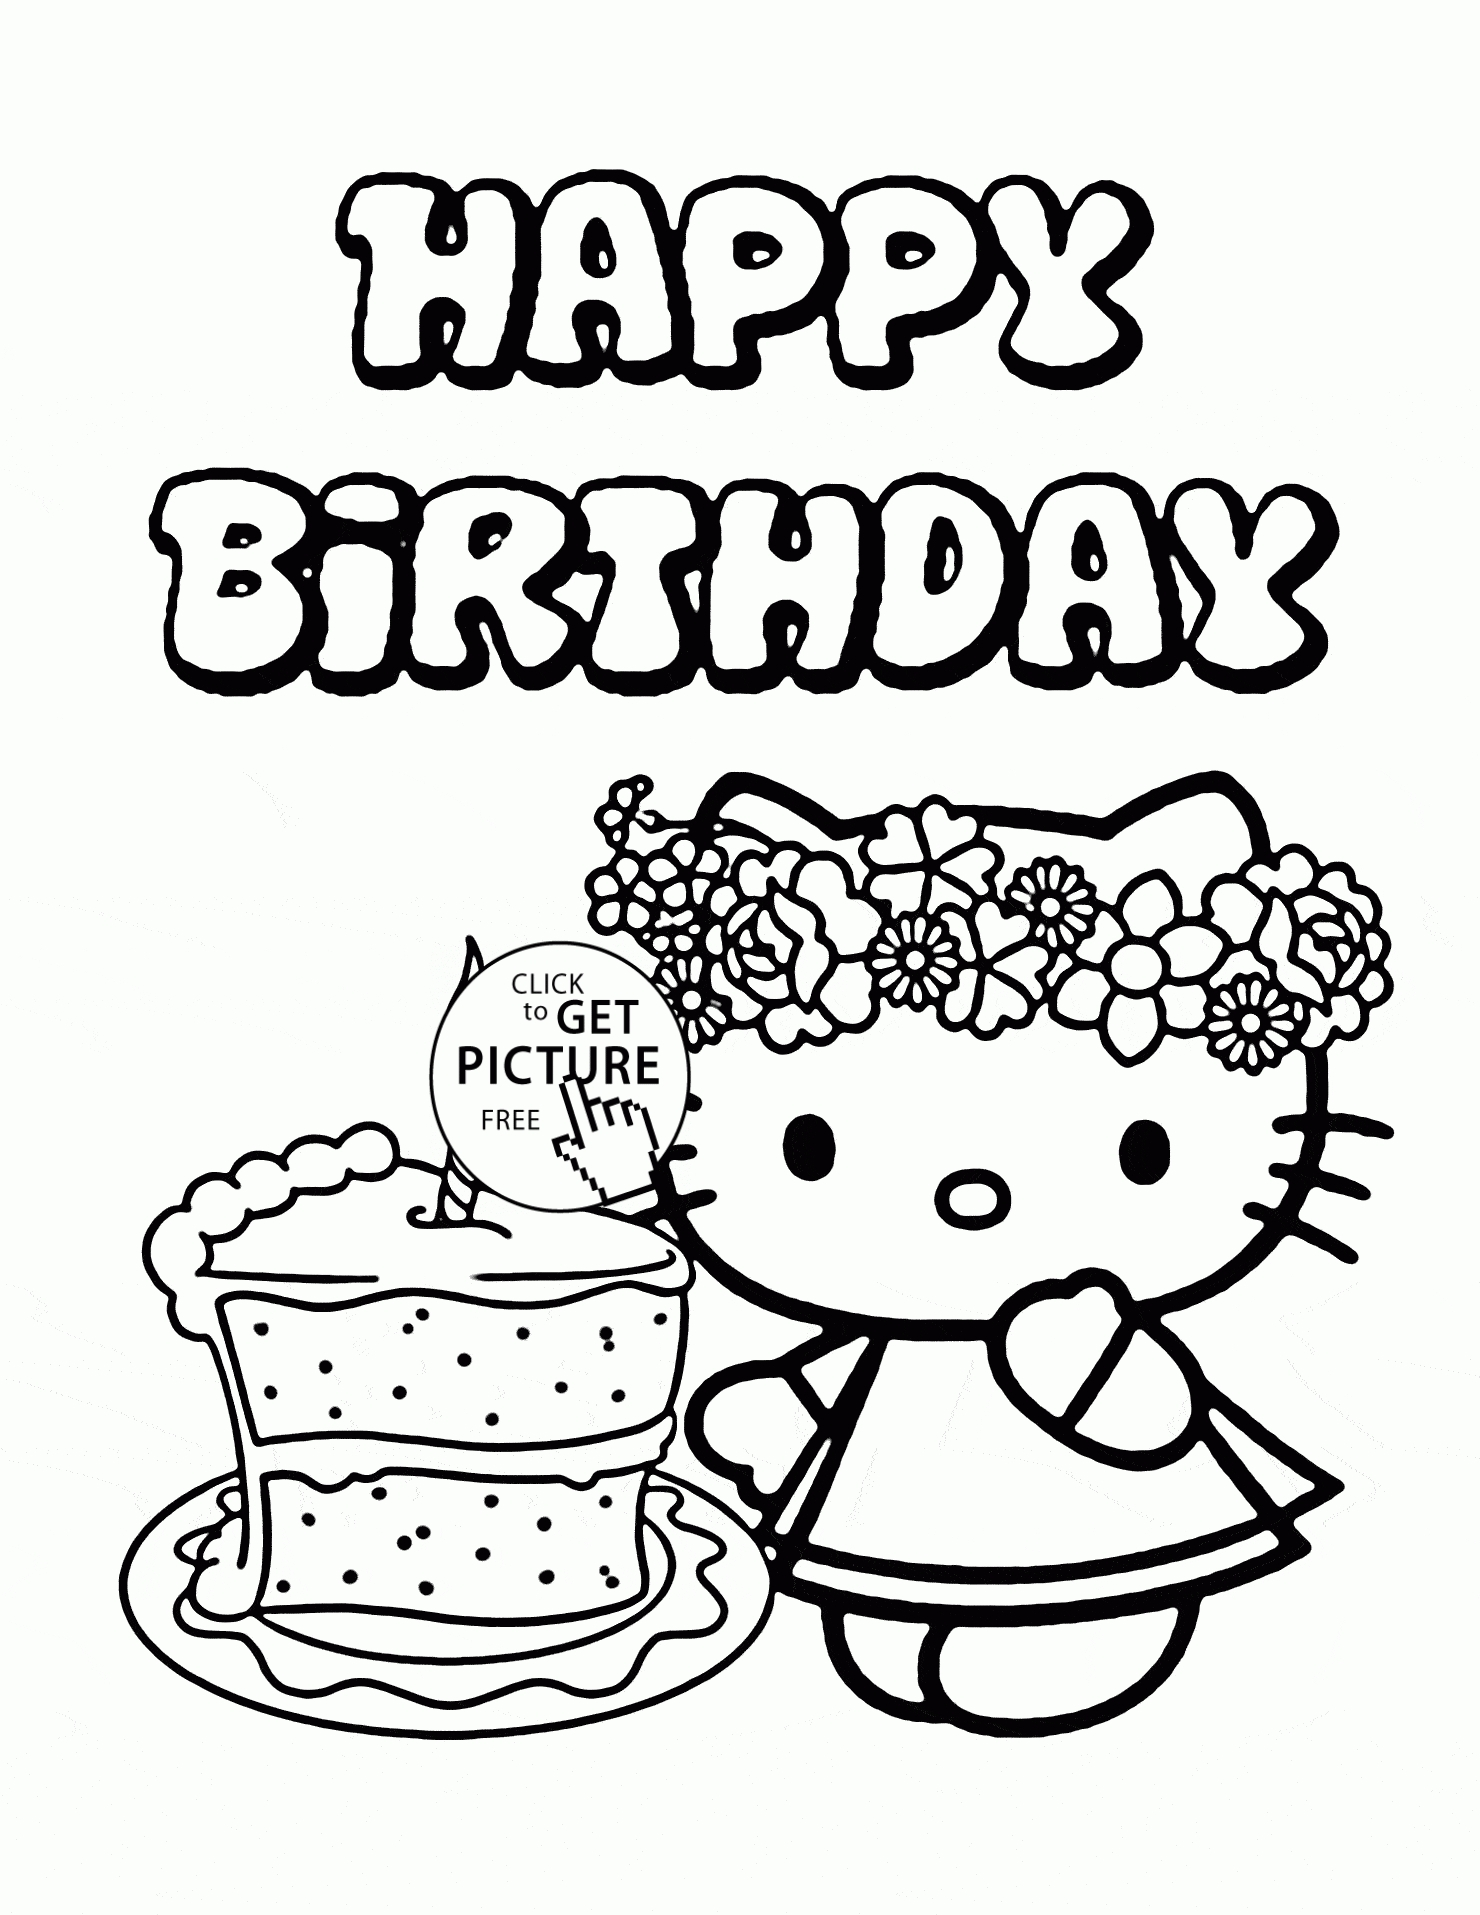 birthday cake coloring page - birthday cake coloring page preschool hello kitty single birthday cake coloring page for kids holiday